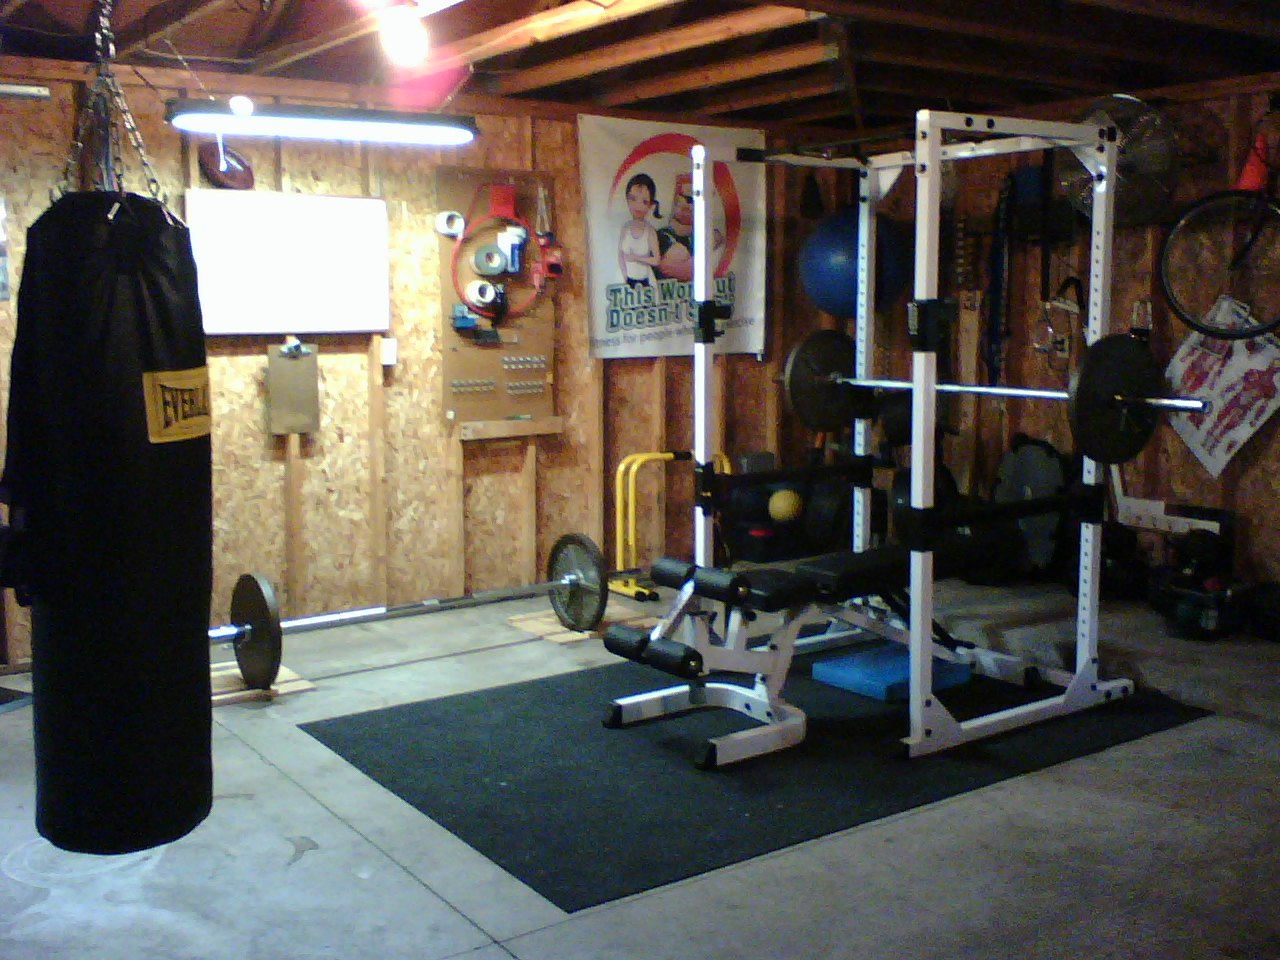 Gym design ideas sweet garage gym ideas commercial gym design